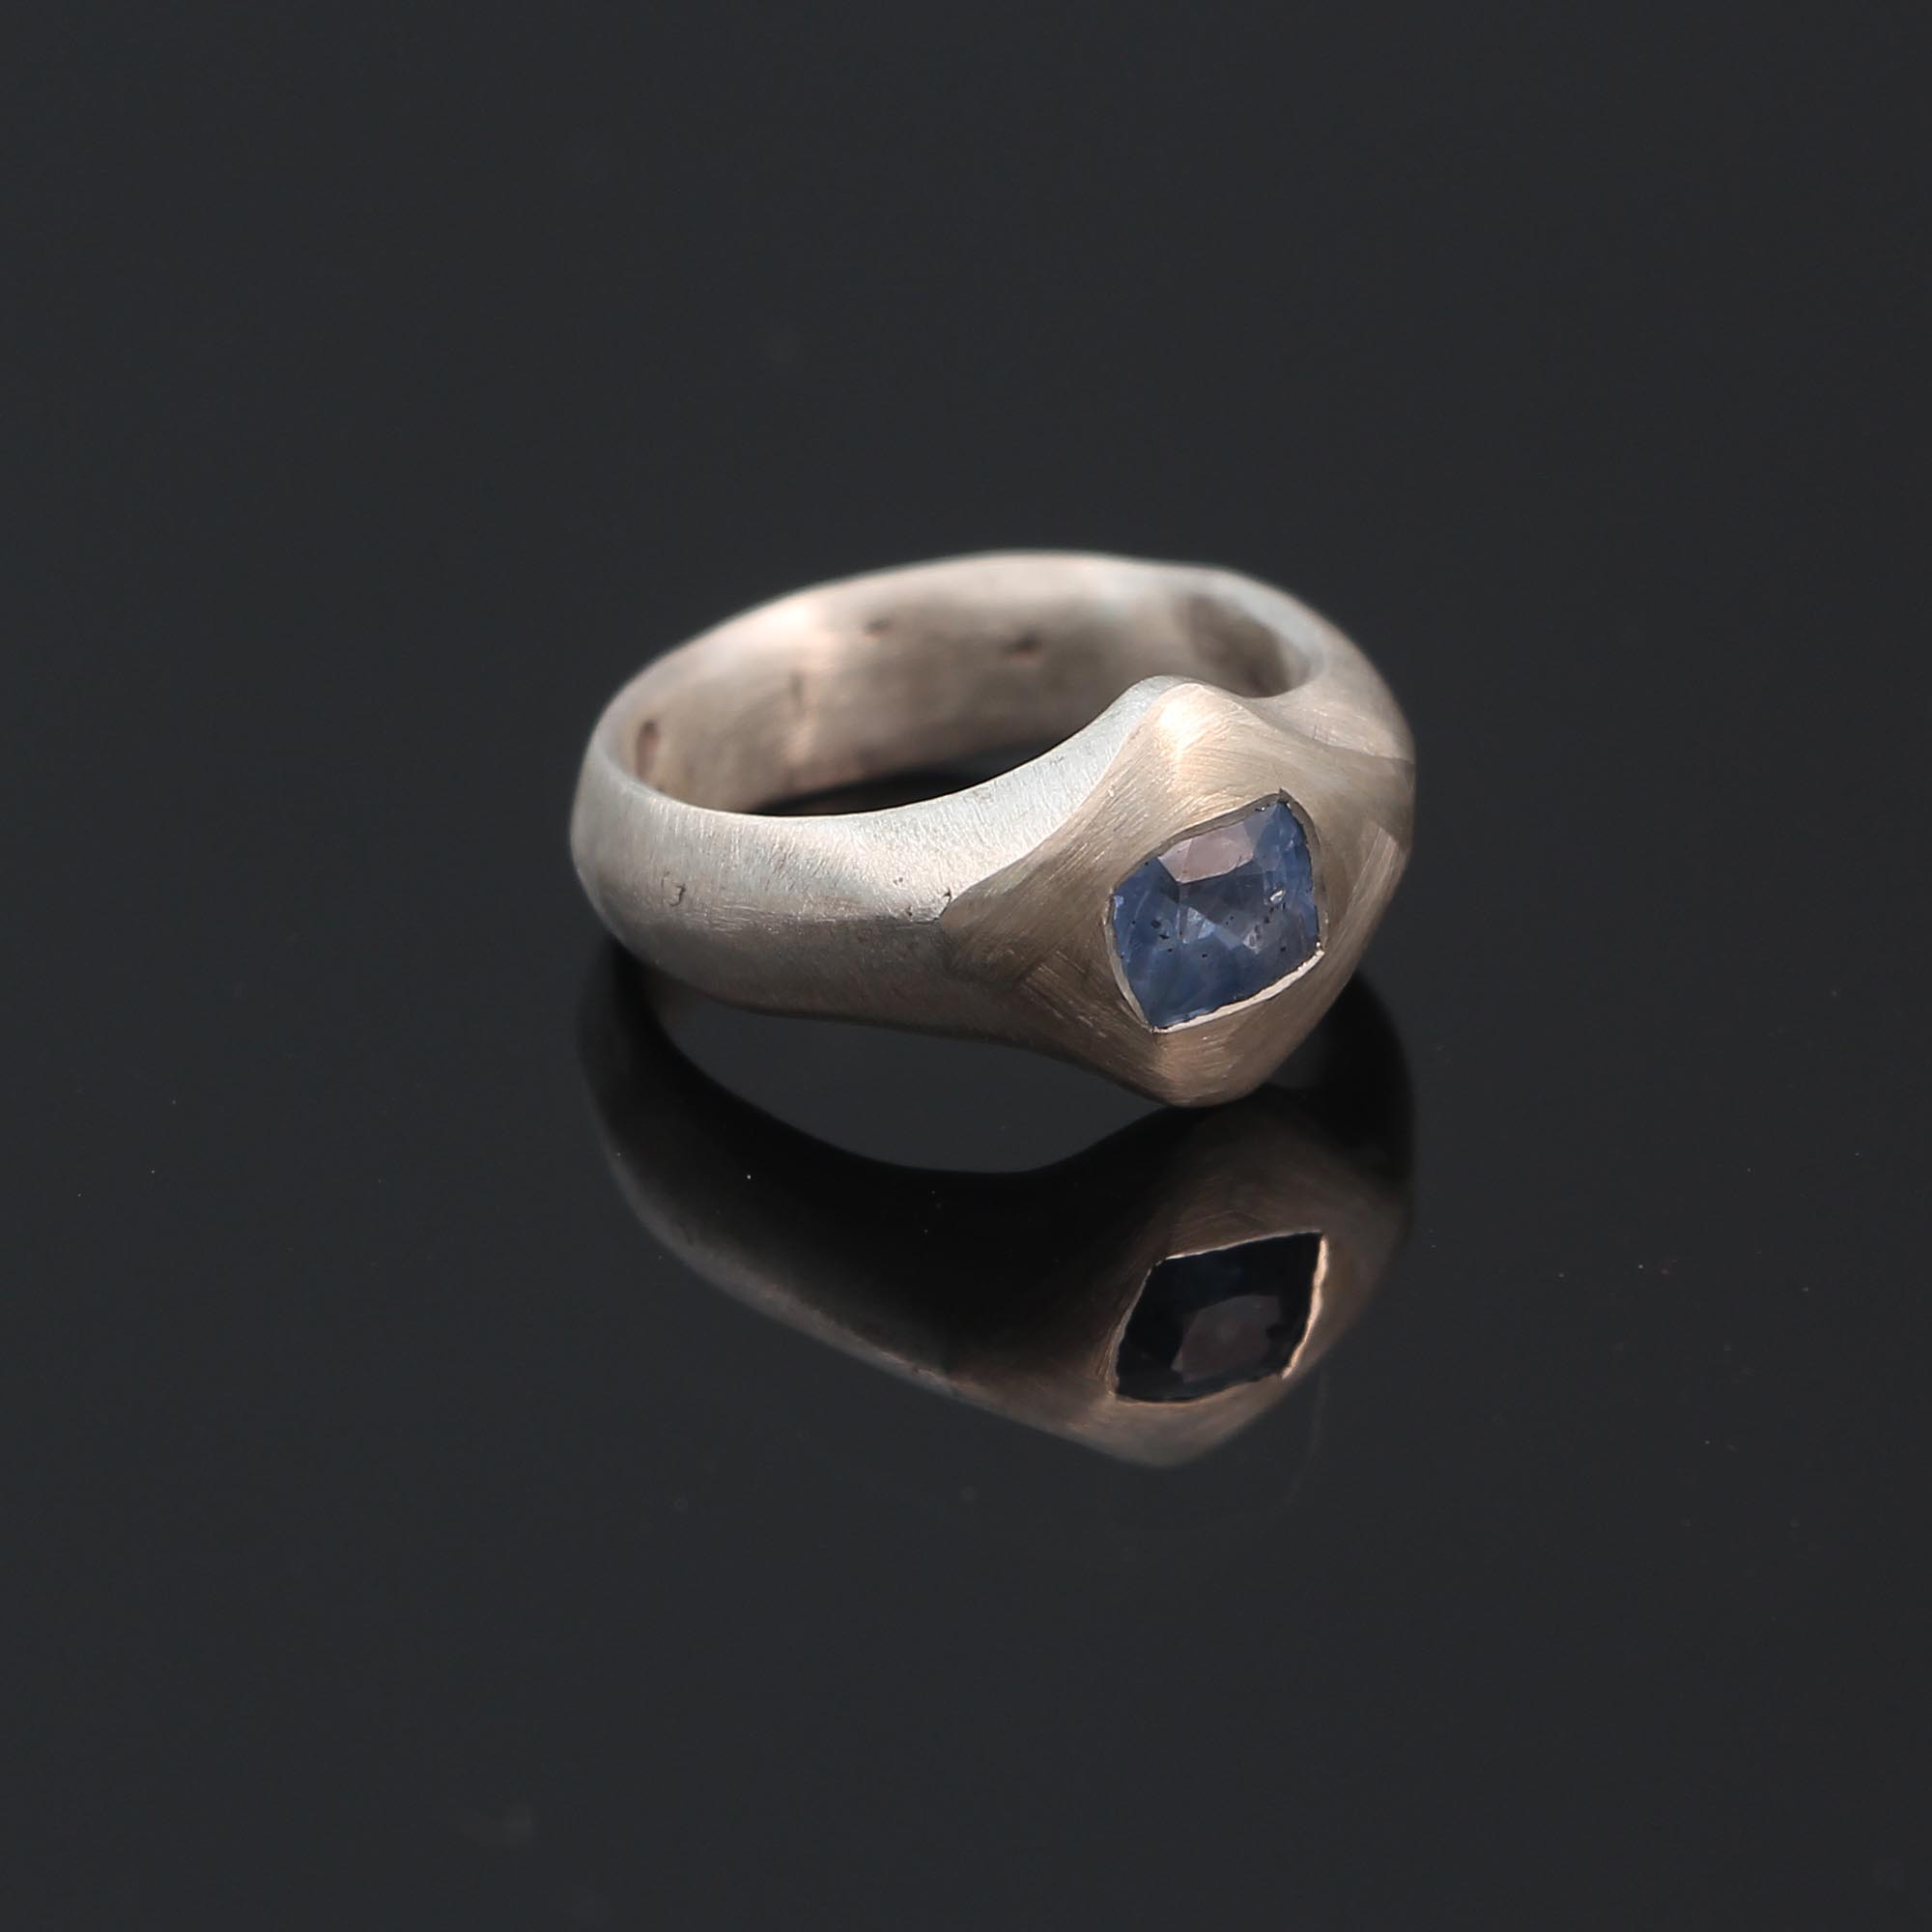 contemporary natural pale blue sapphire ring in sterling silver by melbourne jewellery designer Alexander Wilson at gray reid gallery 2.JPG